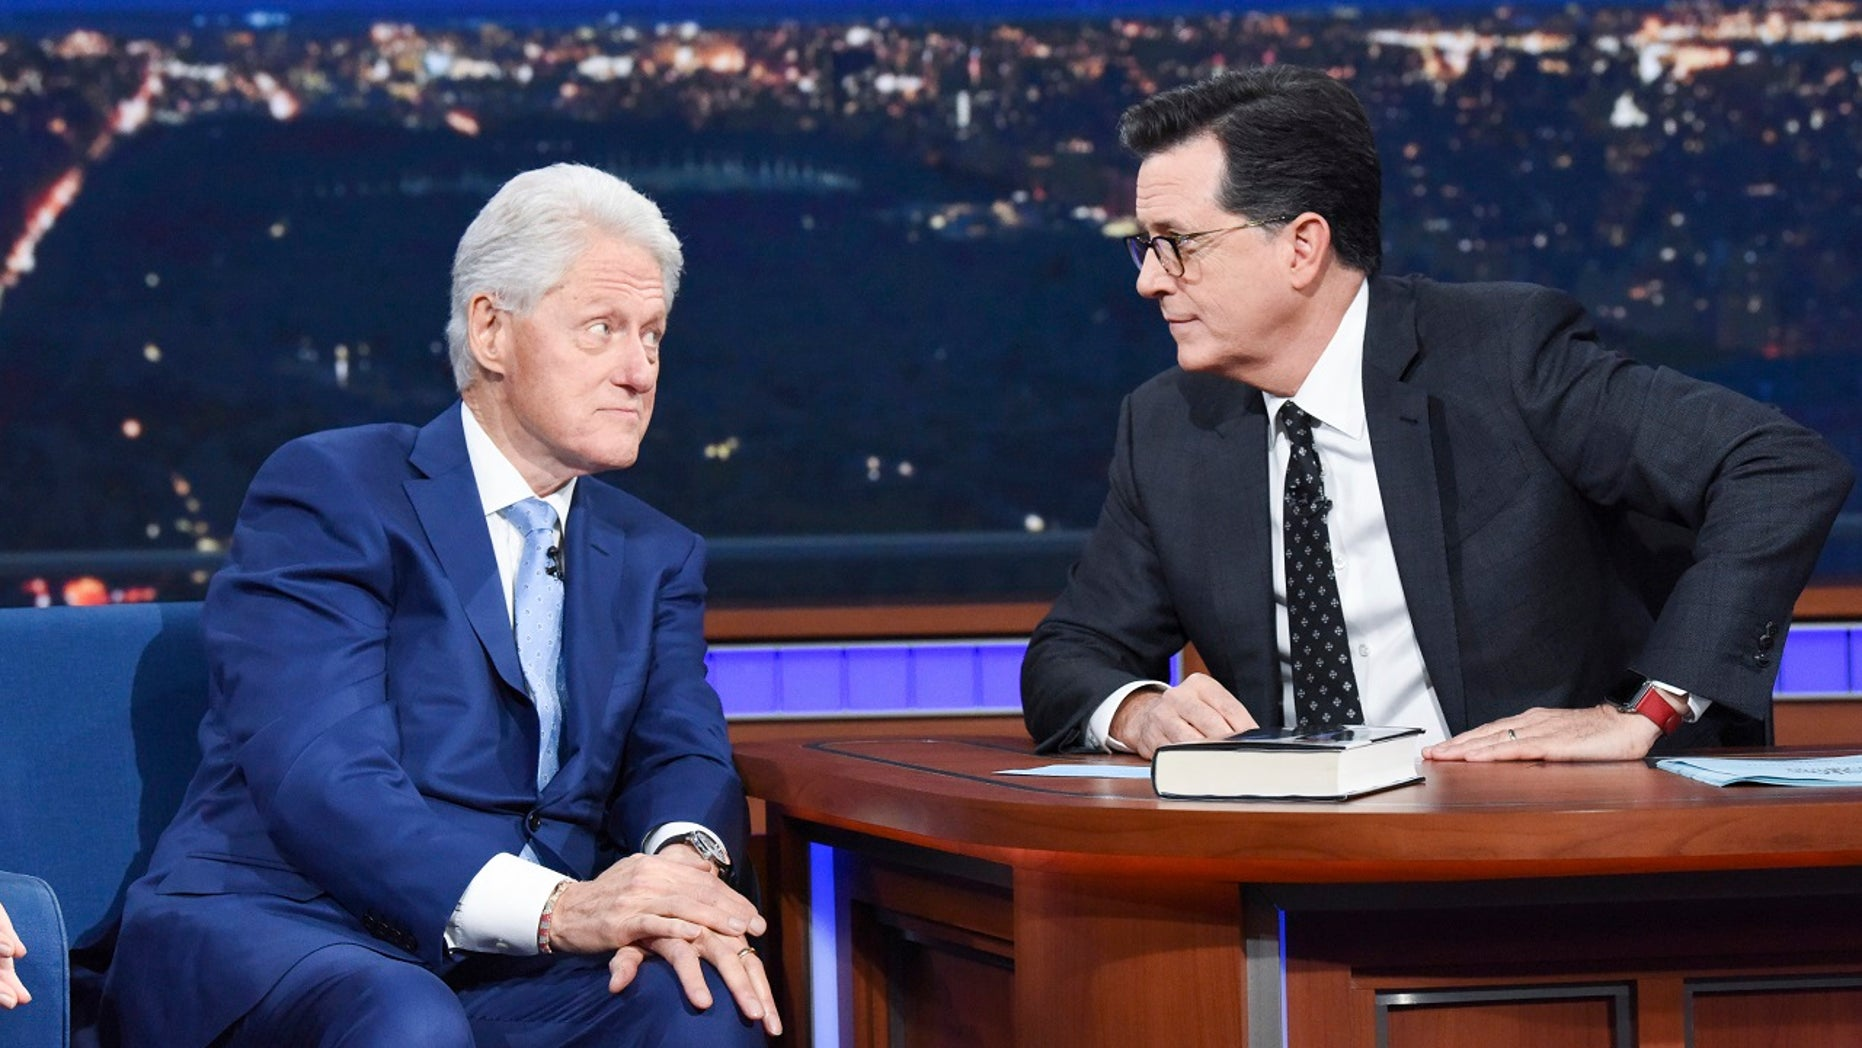 Former President Bill Clinton, left, appears with host Stephen Colbert while promoting his book 'The President is Missing,' on 'The Late Show with Stephen Colbert,' Tuesday, June 5, 2018 in New York.